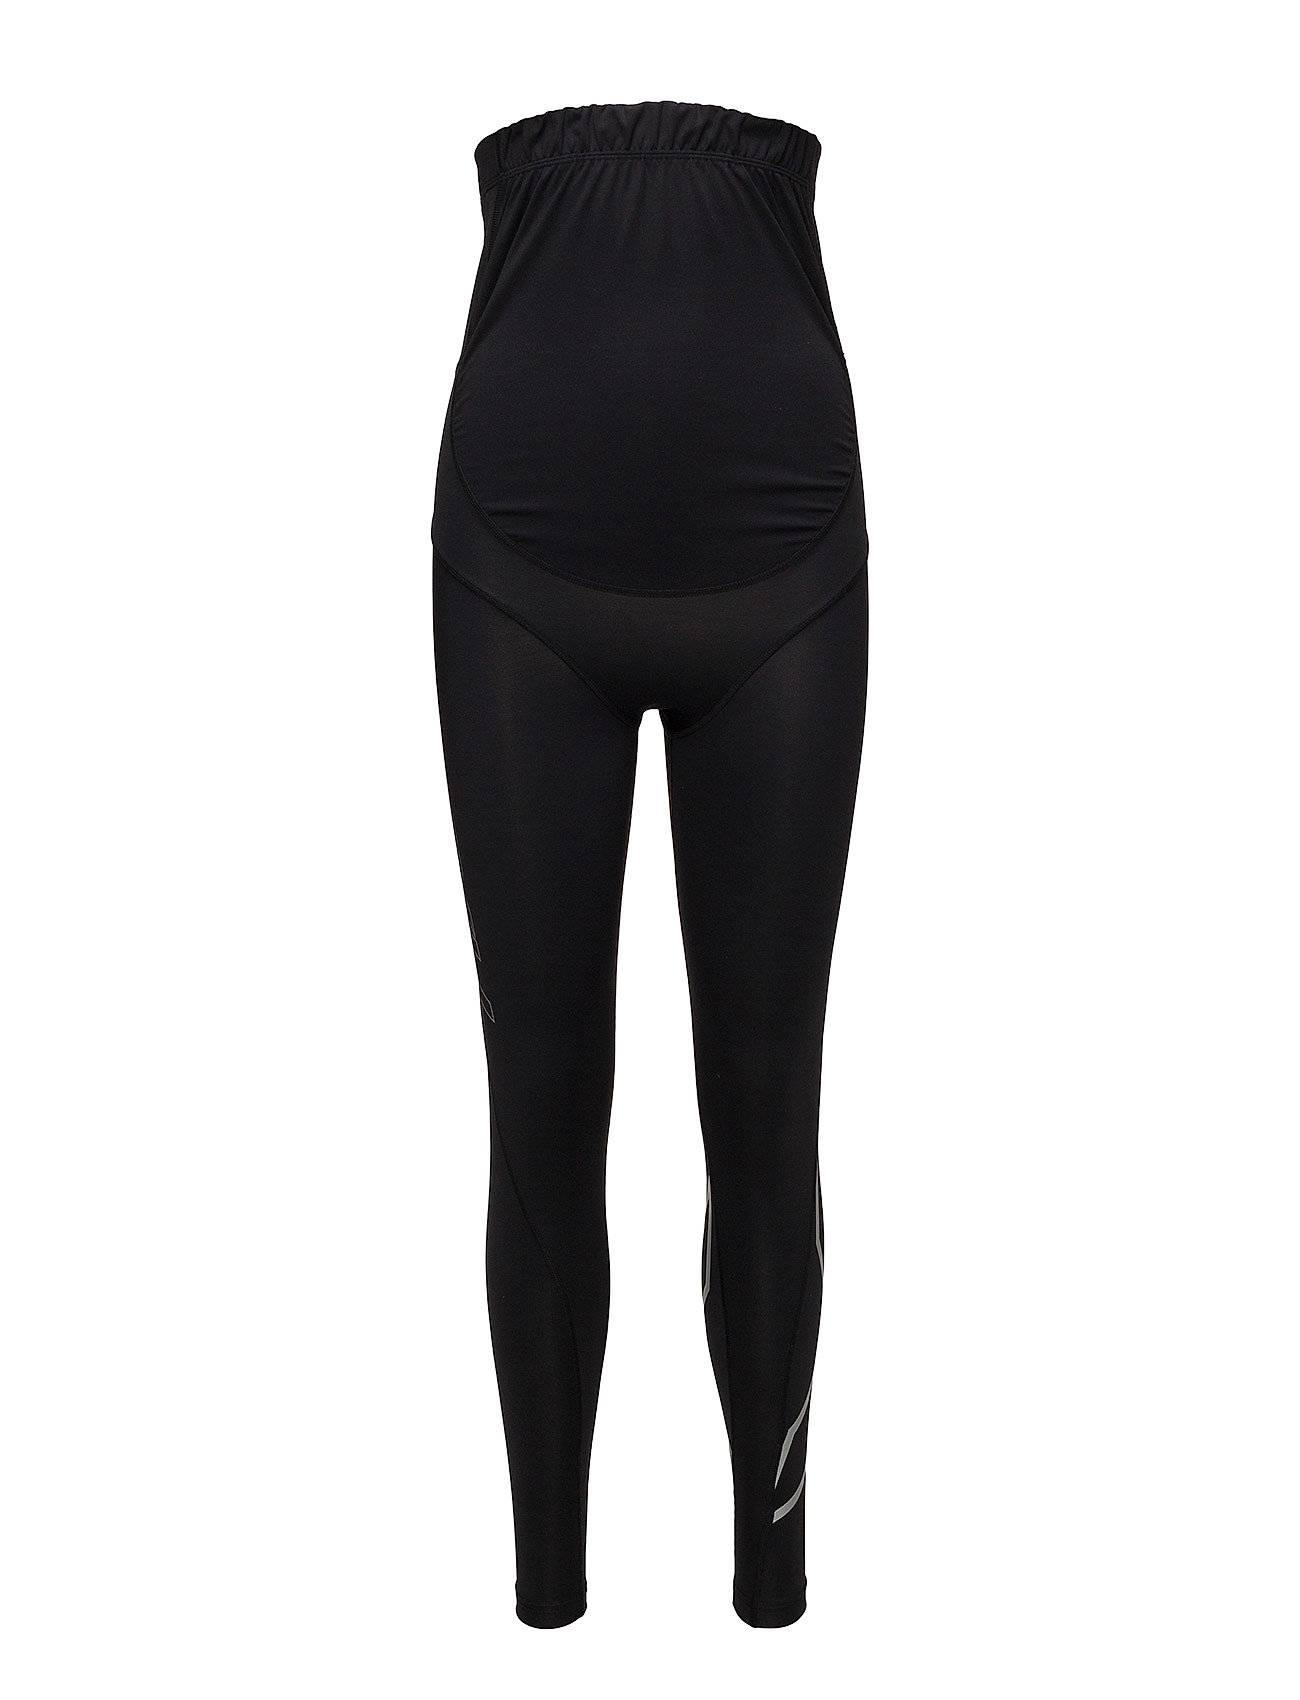 2XU Prenatal Maternity Comp Tights